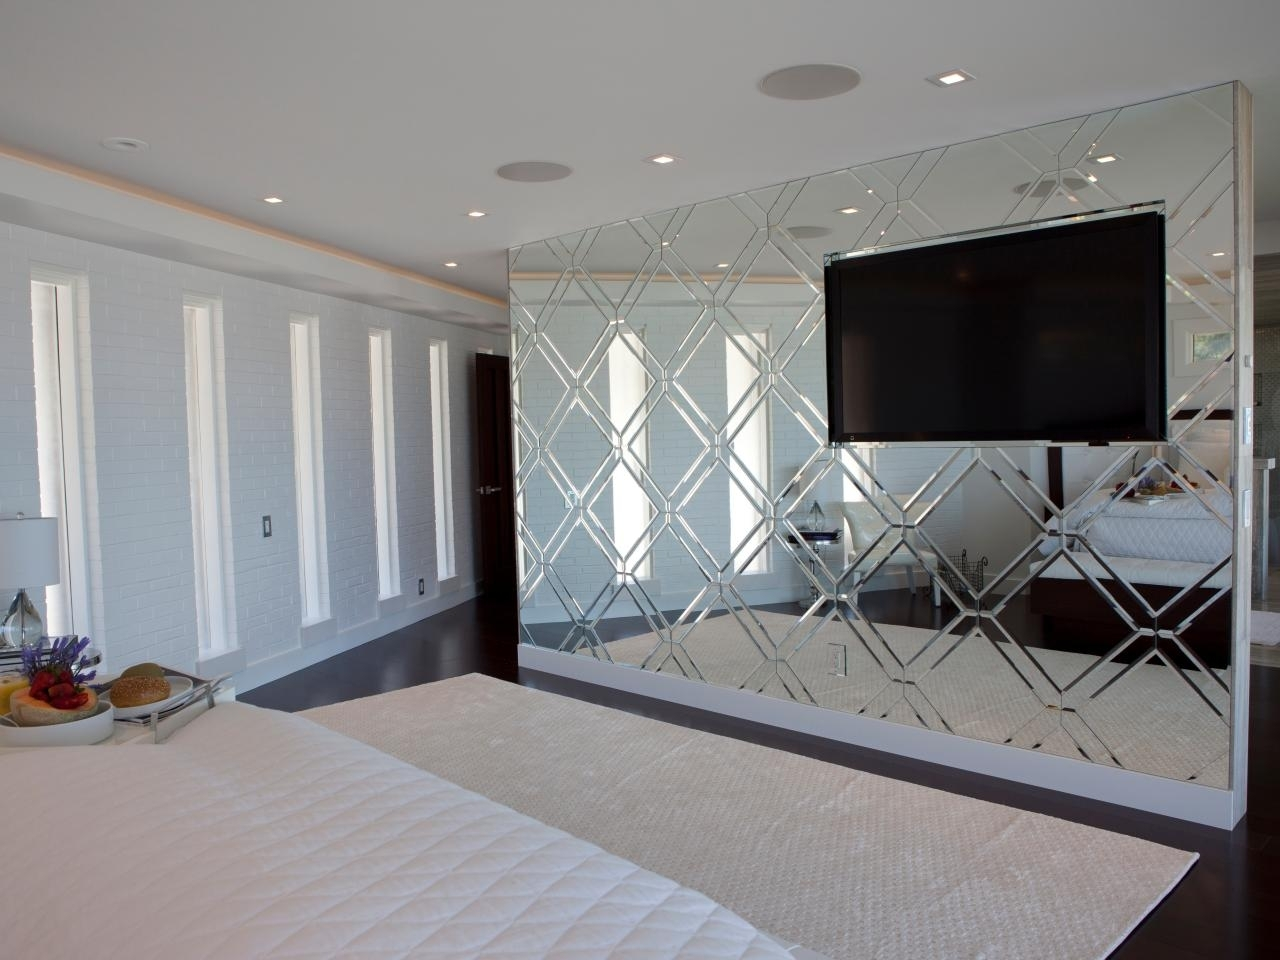 Luxury Custom Bedroom Mirrored Accent Wall A Custom Mirrored Focal With Regard To Most Current Custom Wall Accents (Gallery 12 of 15)